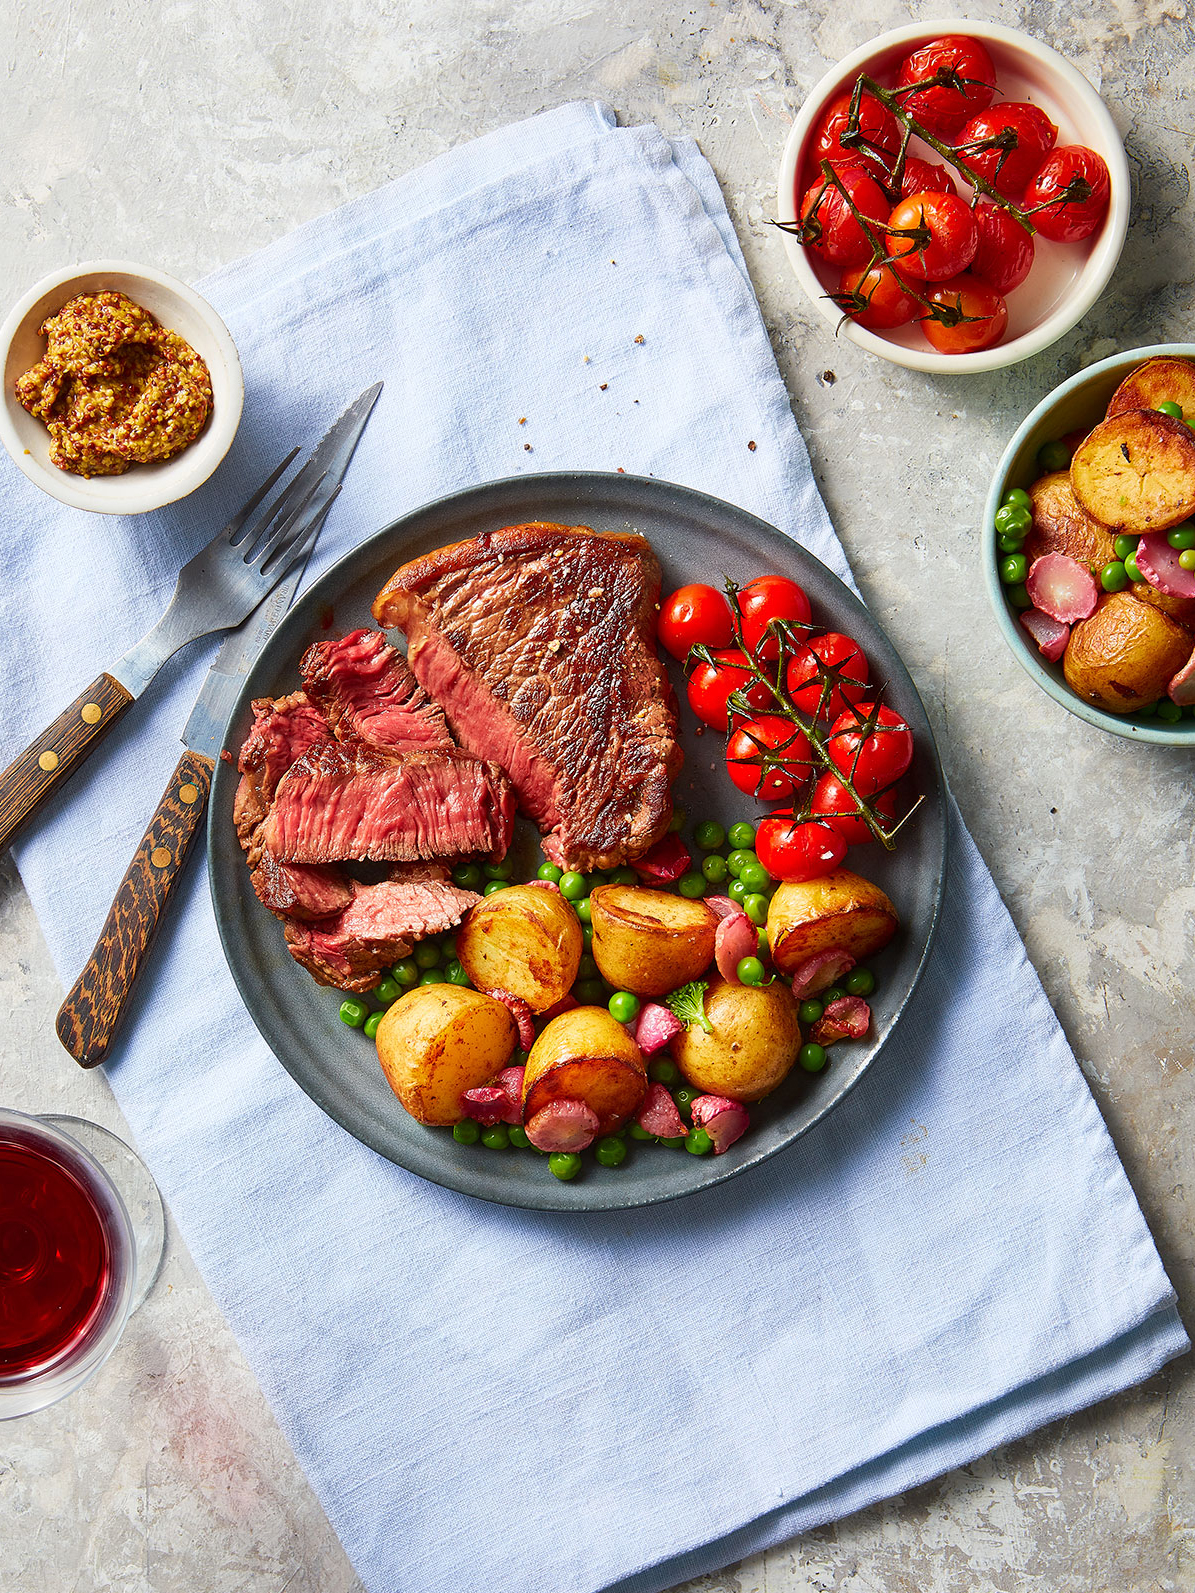 Rump steak served medium rare with gilled cherry tomatoes and new potato salad